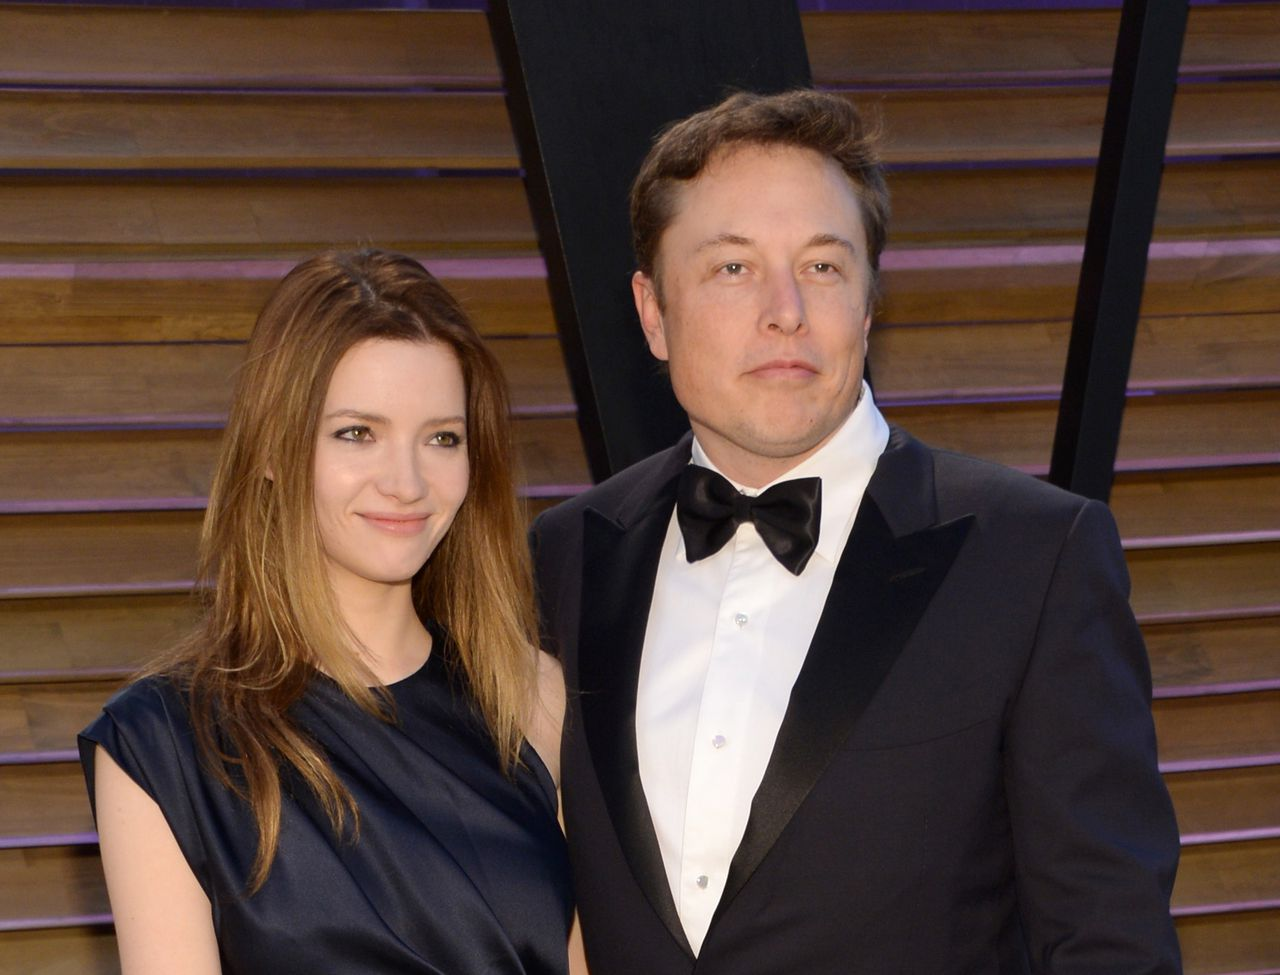 FILE - In this March 2, 2014 file photo, Talulah Riley, left, and Elon Musk attend the 2014 Vanity Fair Oscar Party, in West Hollywood, Calif. Musk and his wife are divorcing for a second time. The entrepreneur and his wife, Riley, issued a joint statement Wednesday, Dec. 31, 2014, announcing they are splitting amicably after they remarried in July 2013 following their previous breakup. (Photo by Evan Agostini/Invision/AP, File)